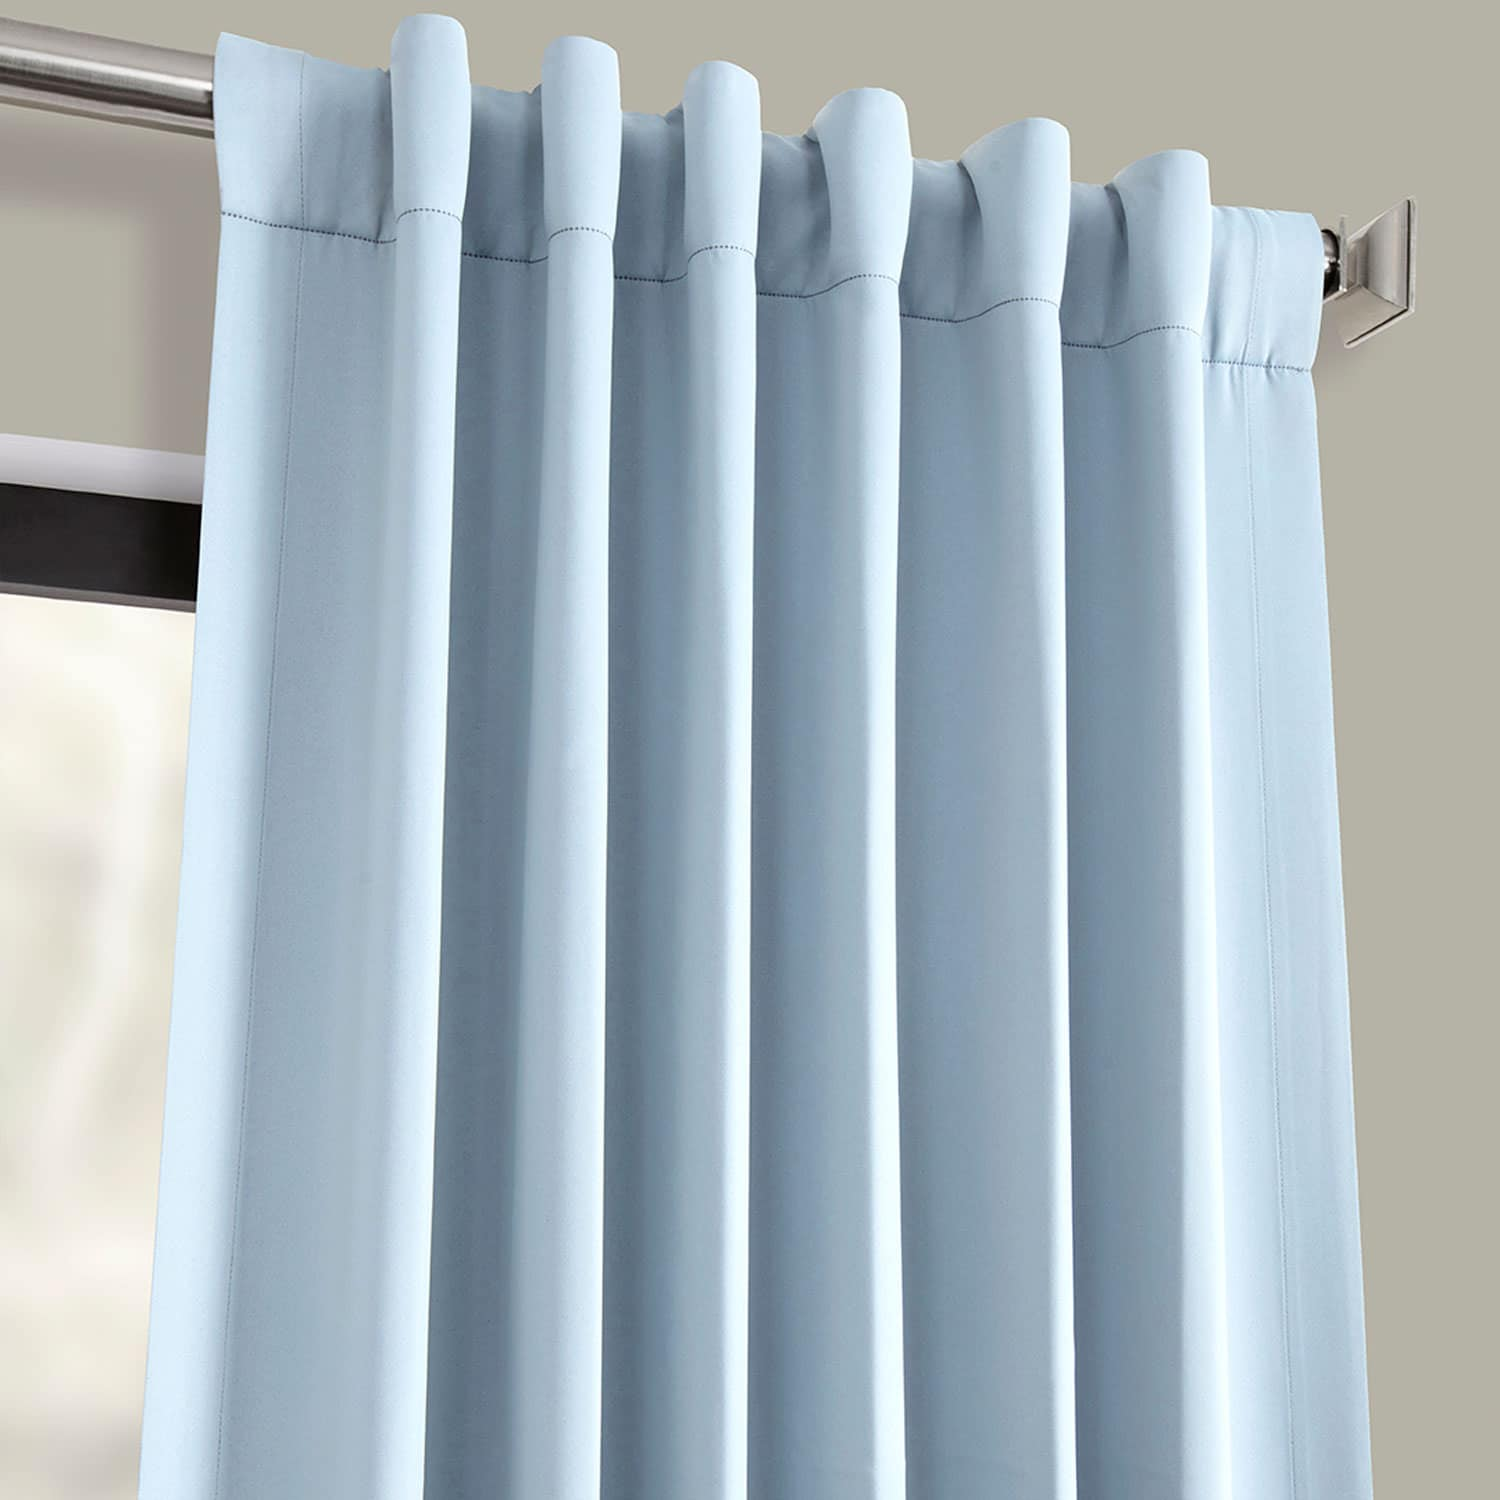 Frosted Blue Blackout Room Darkening Curtain